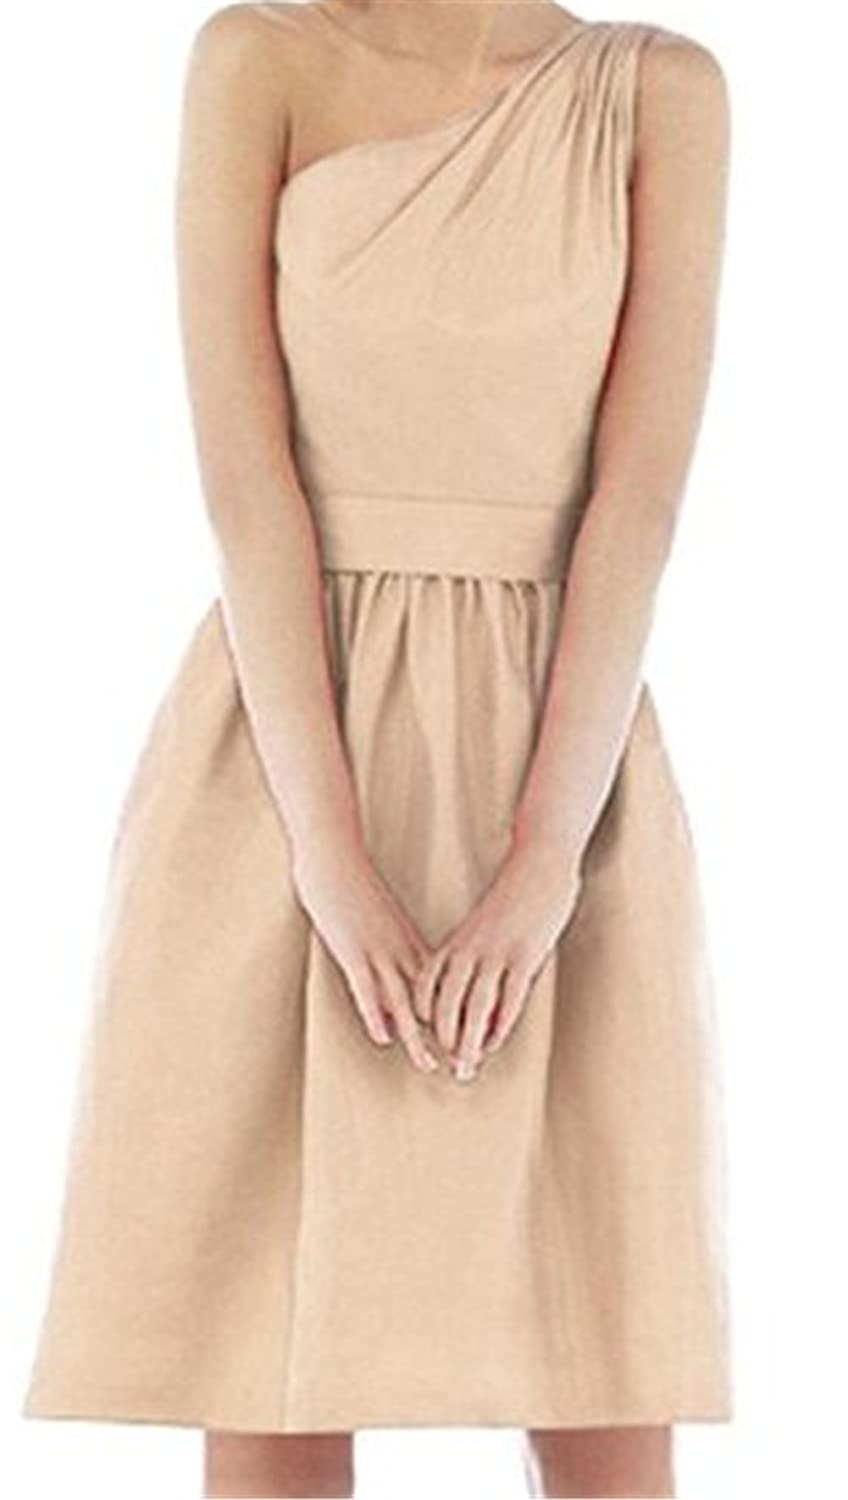 Endofjune Simple Single Shoulder Chiffon Skirt Homecoming Dance Dress US-12 Apricot